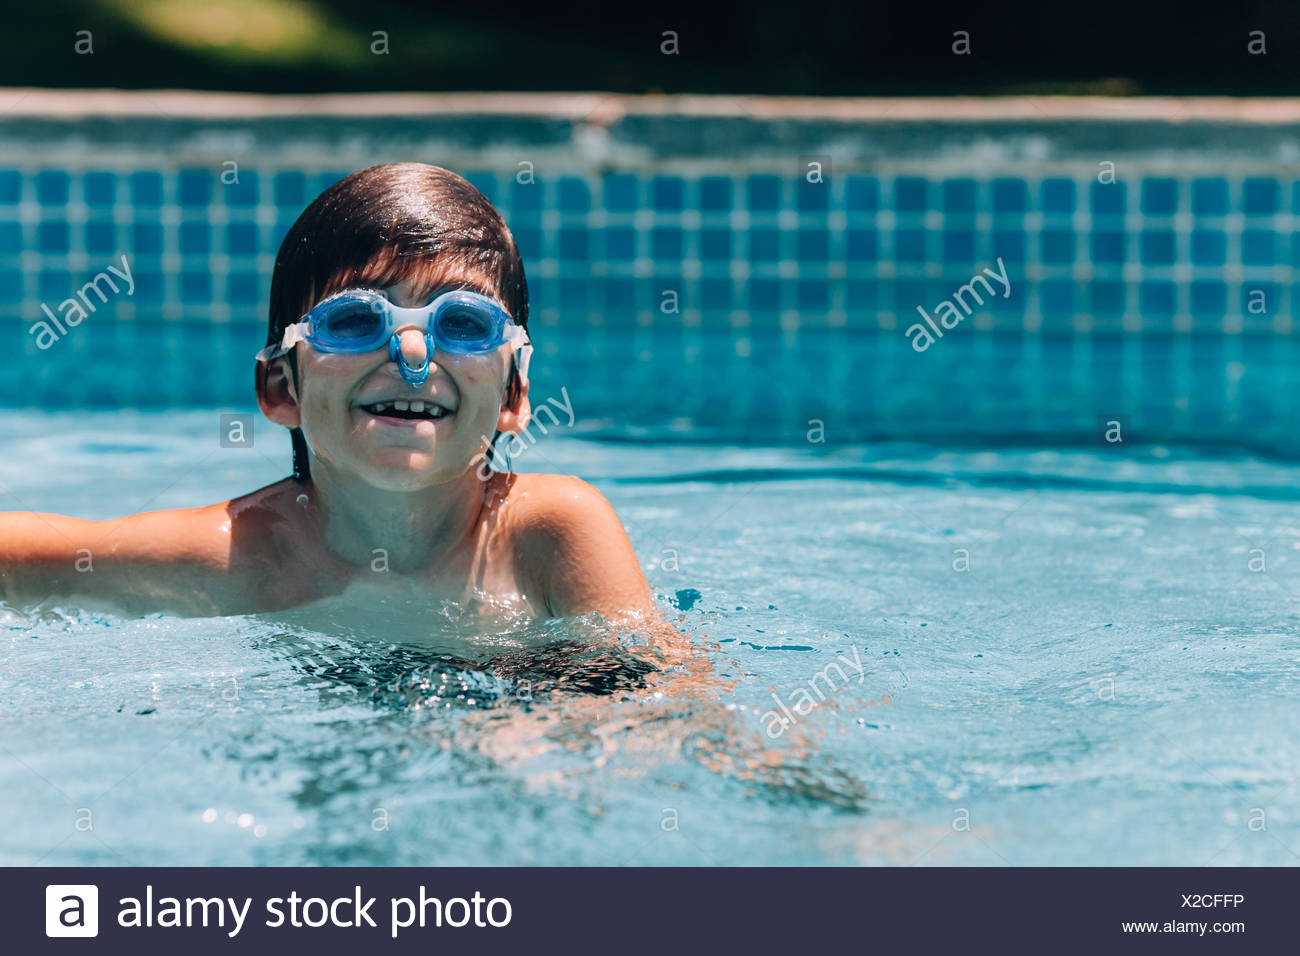 Smiling boy wearing goggles and nose clip in swimming pool - Stock Image